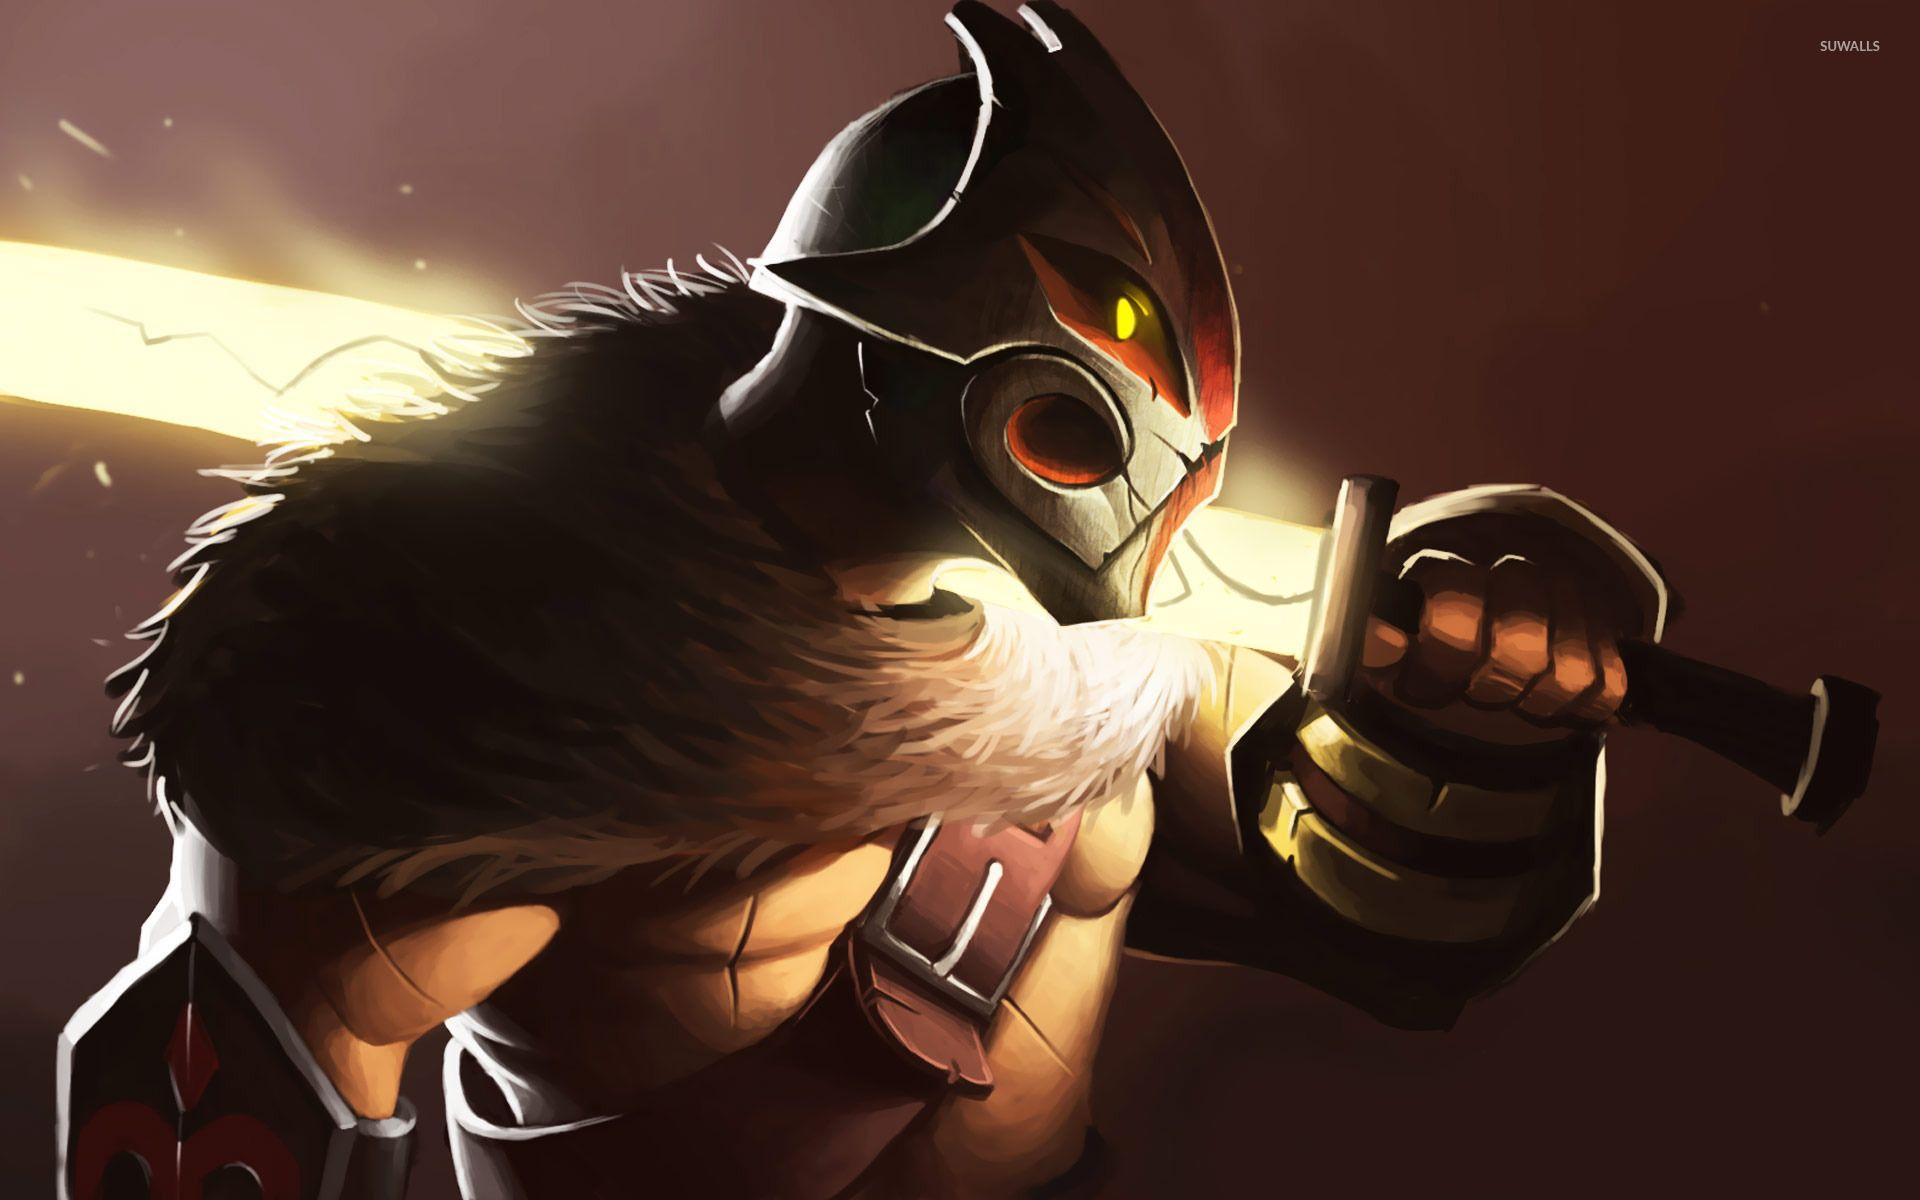 Juggernaut - Dota 2 wallpaper - Game wallpapers - #19268